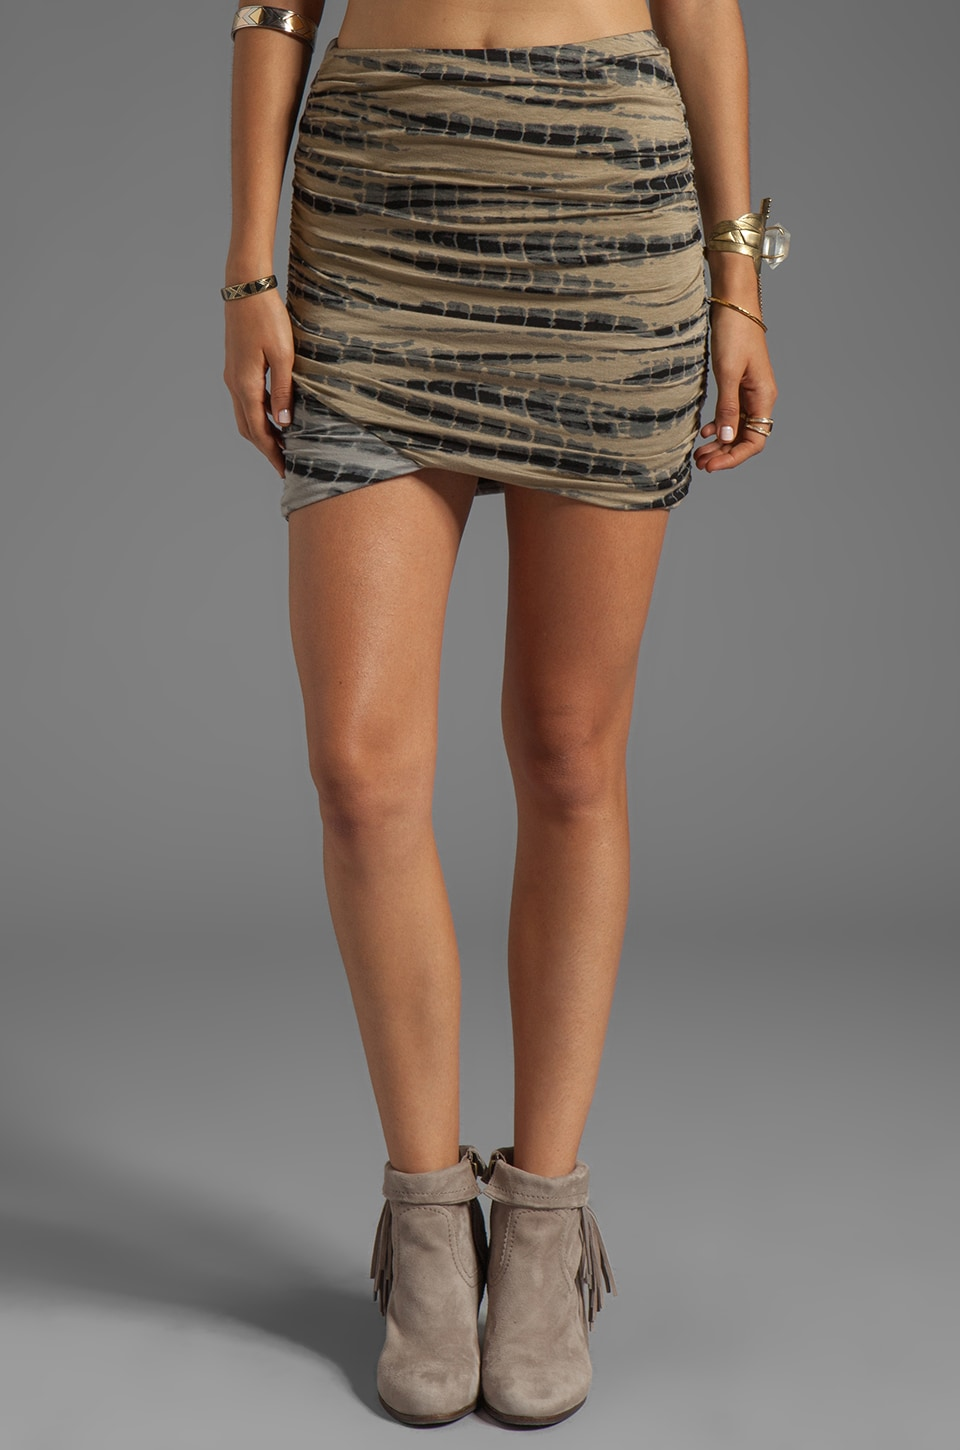 Free People Tie Dye Essential Scrunch Skirt in Military Combo